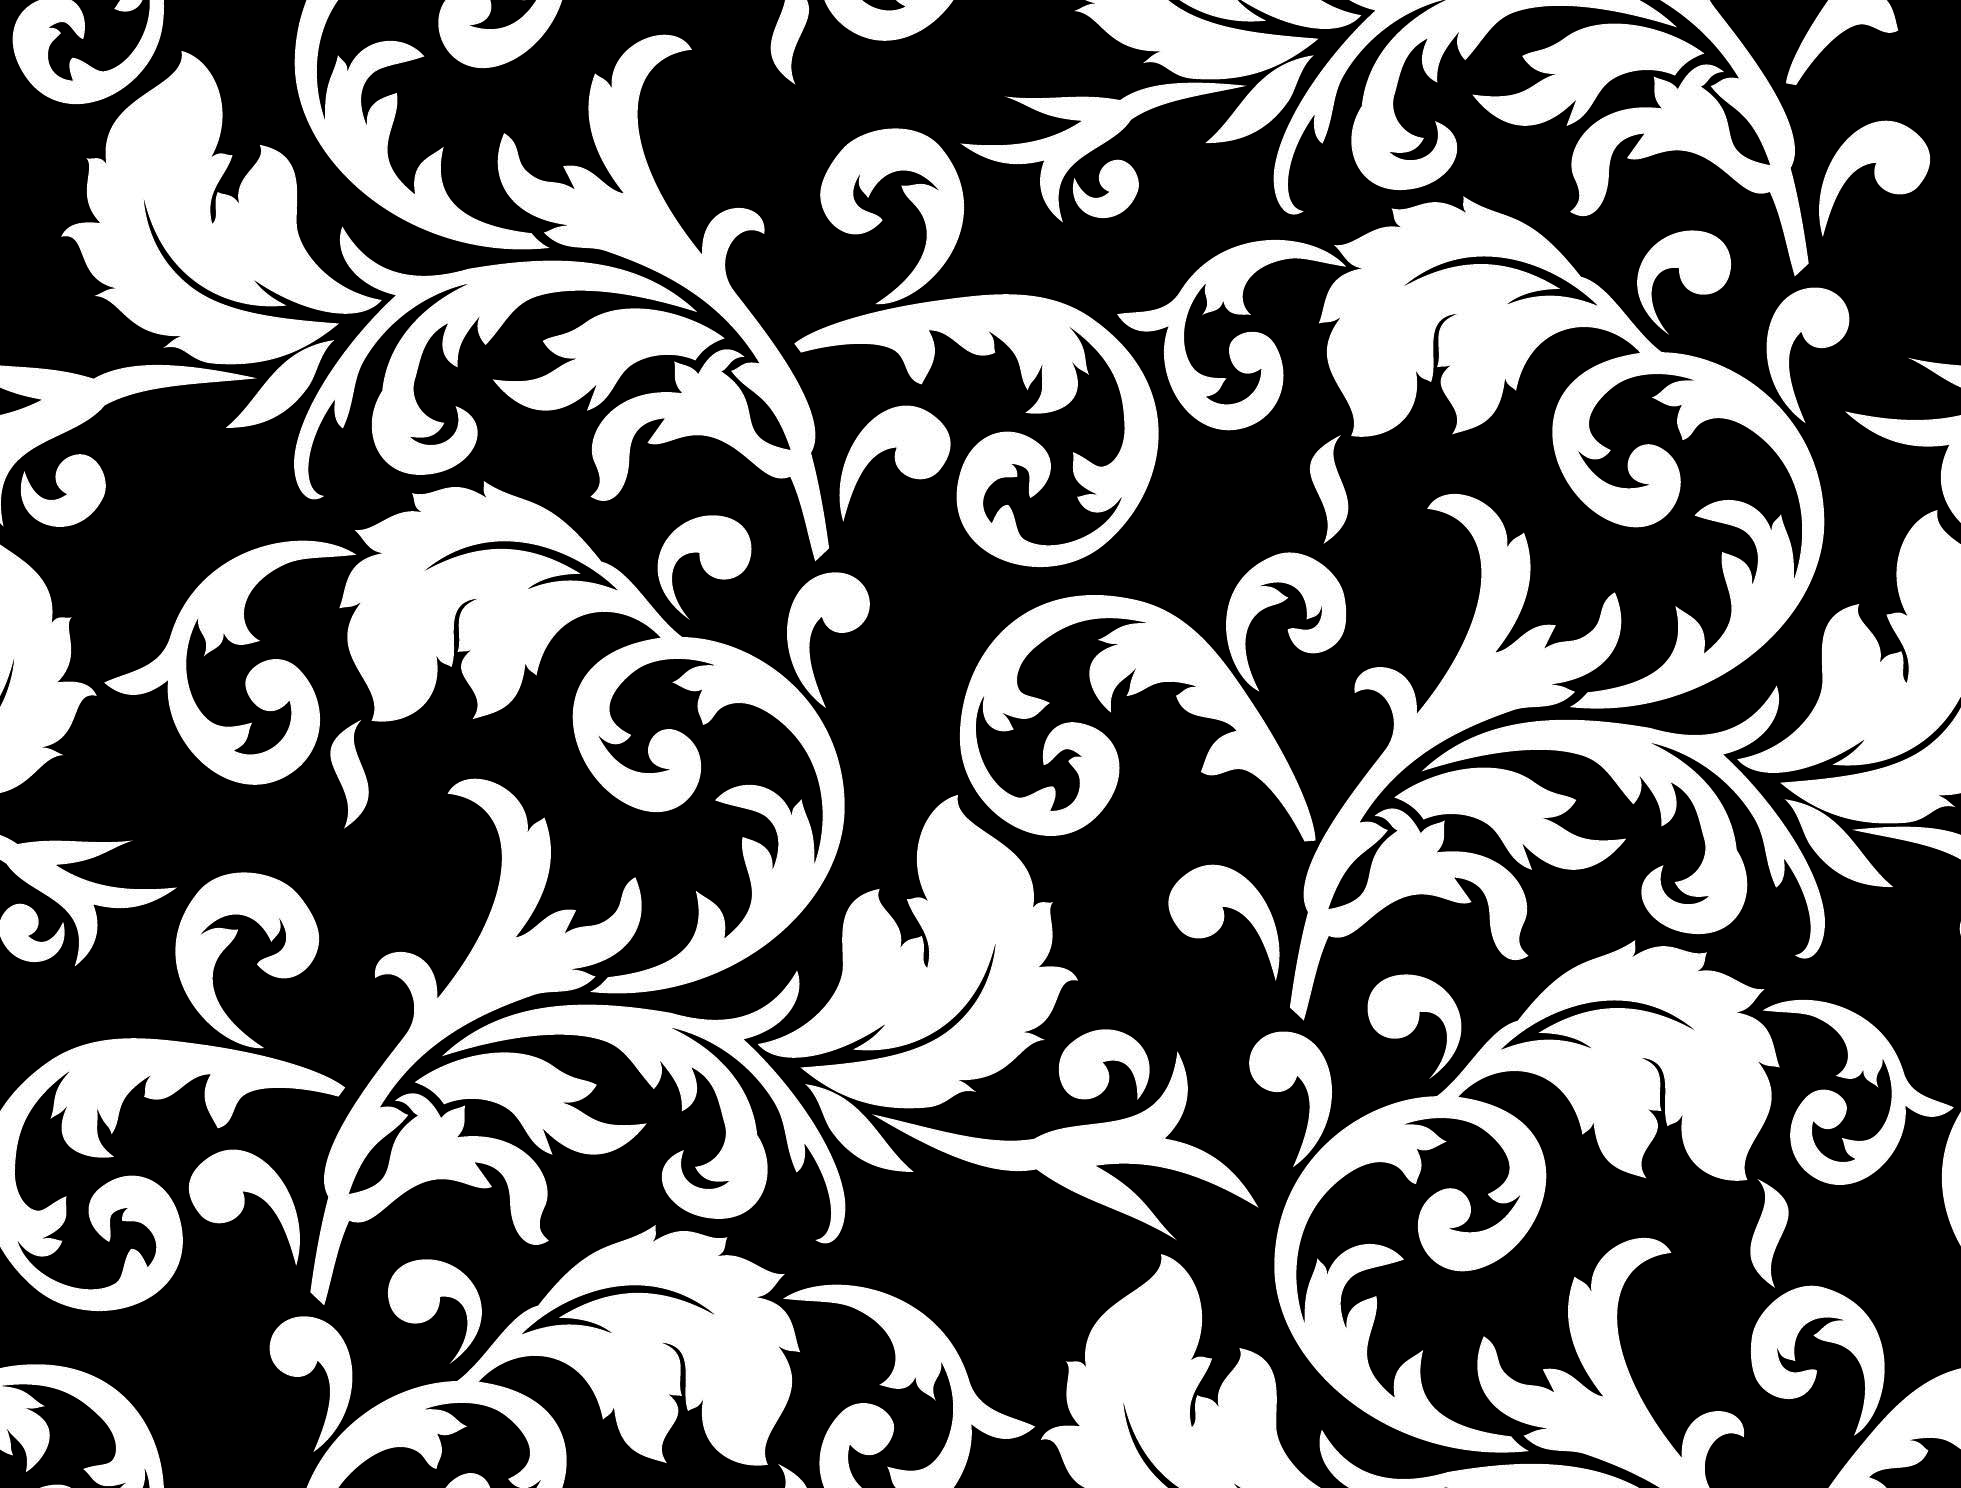 free-vector-classical-traditional-floral-pattern-background